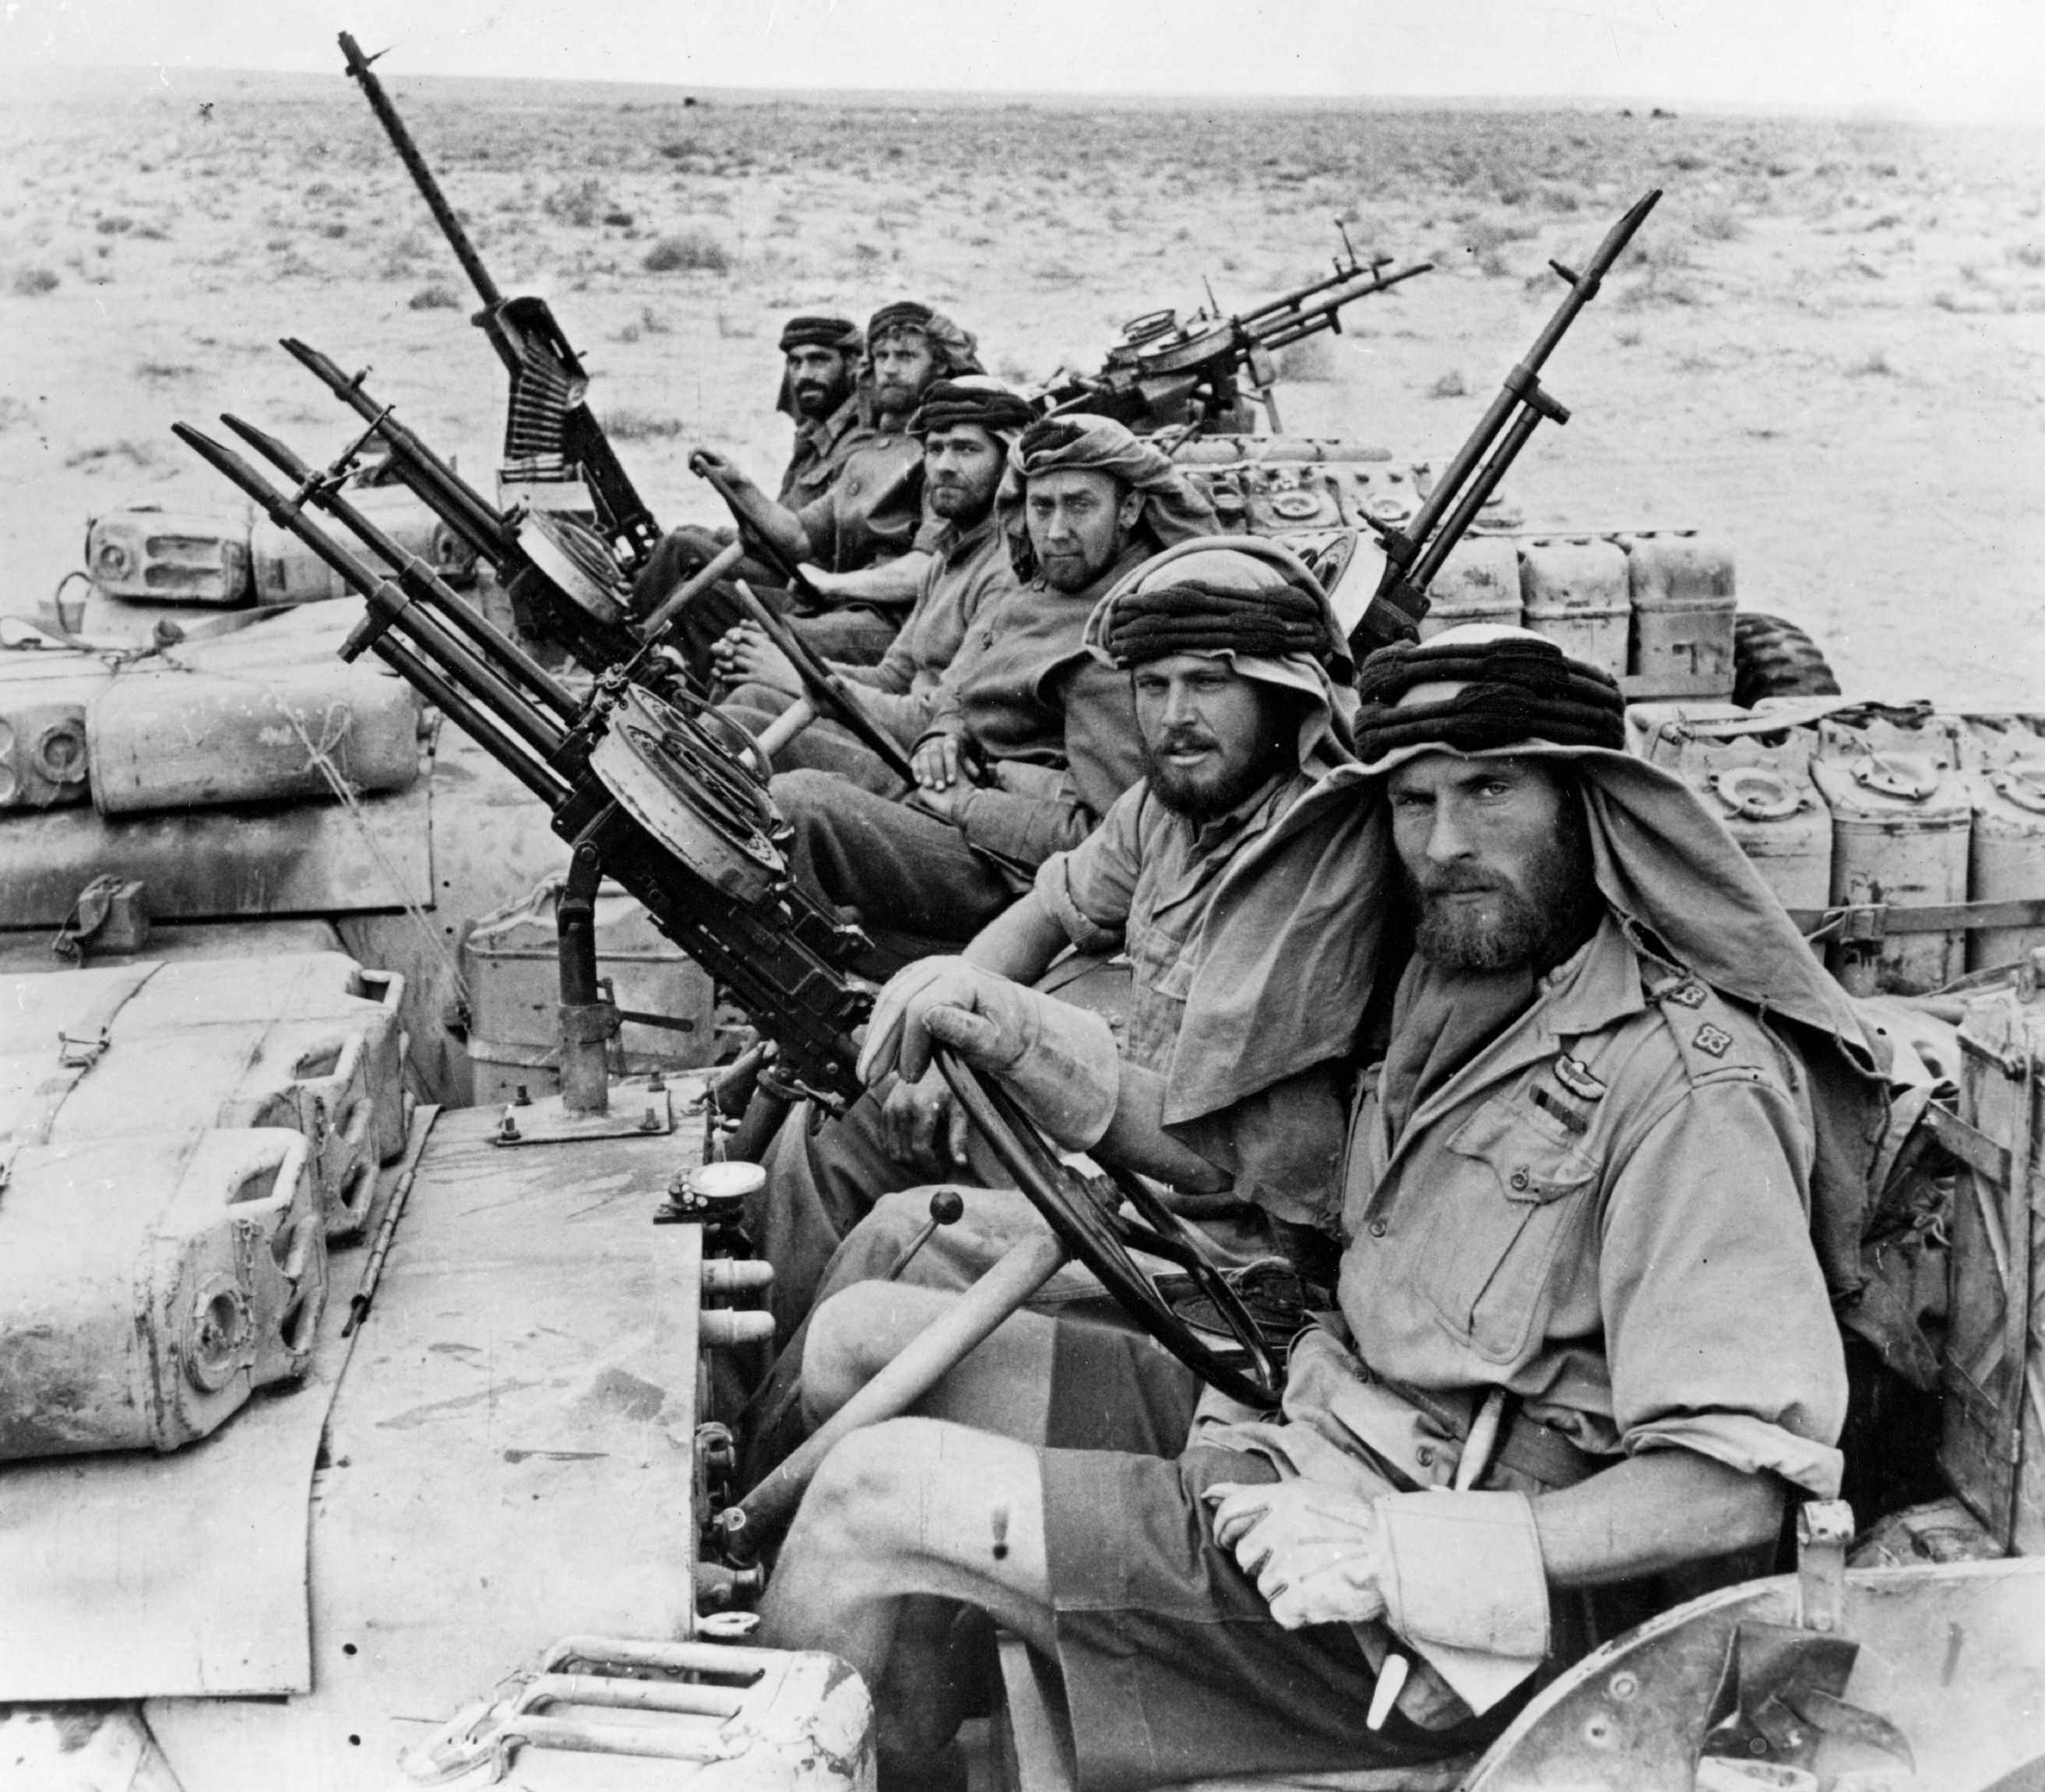 Men of the SAS returning from a three-month trip behind enemy lines during the war in North Africa. (Photo by Hulton Archive/Getty Images)